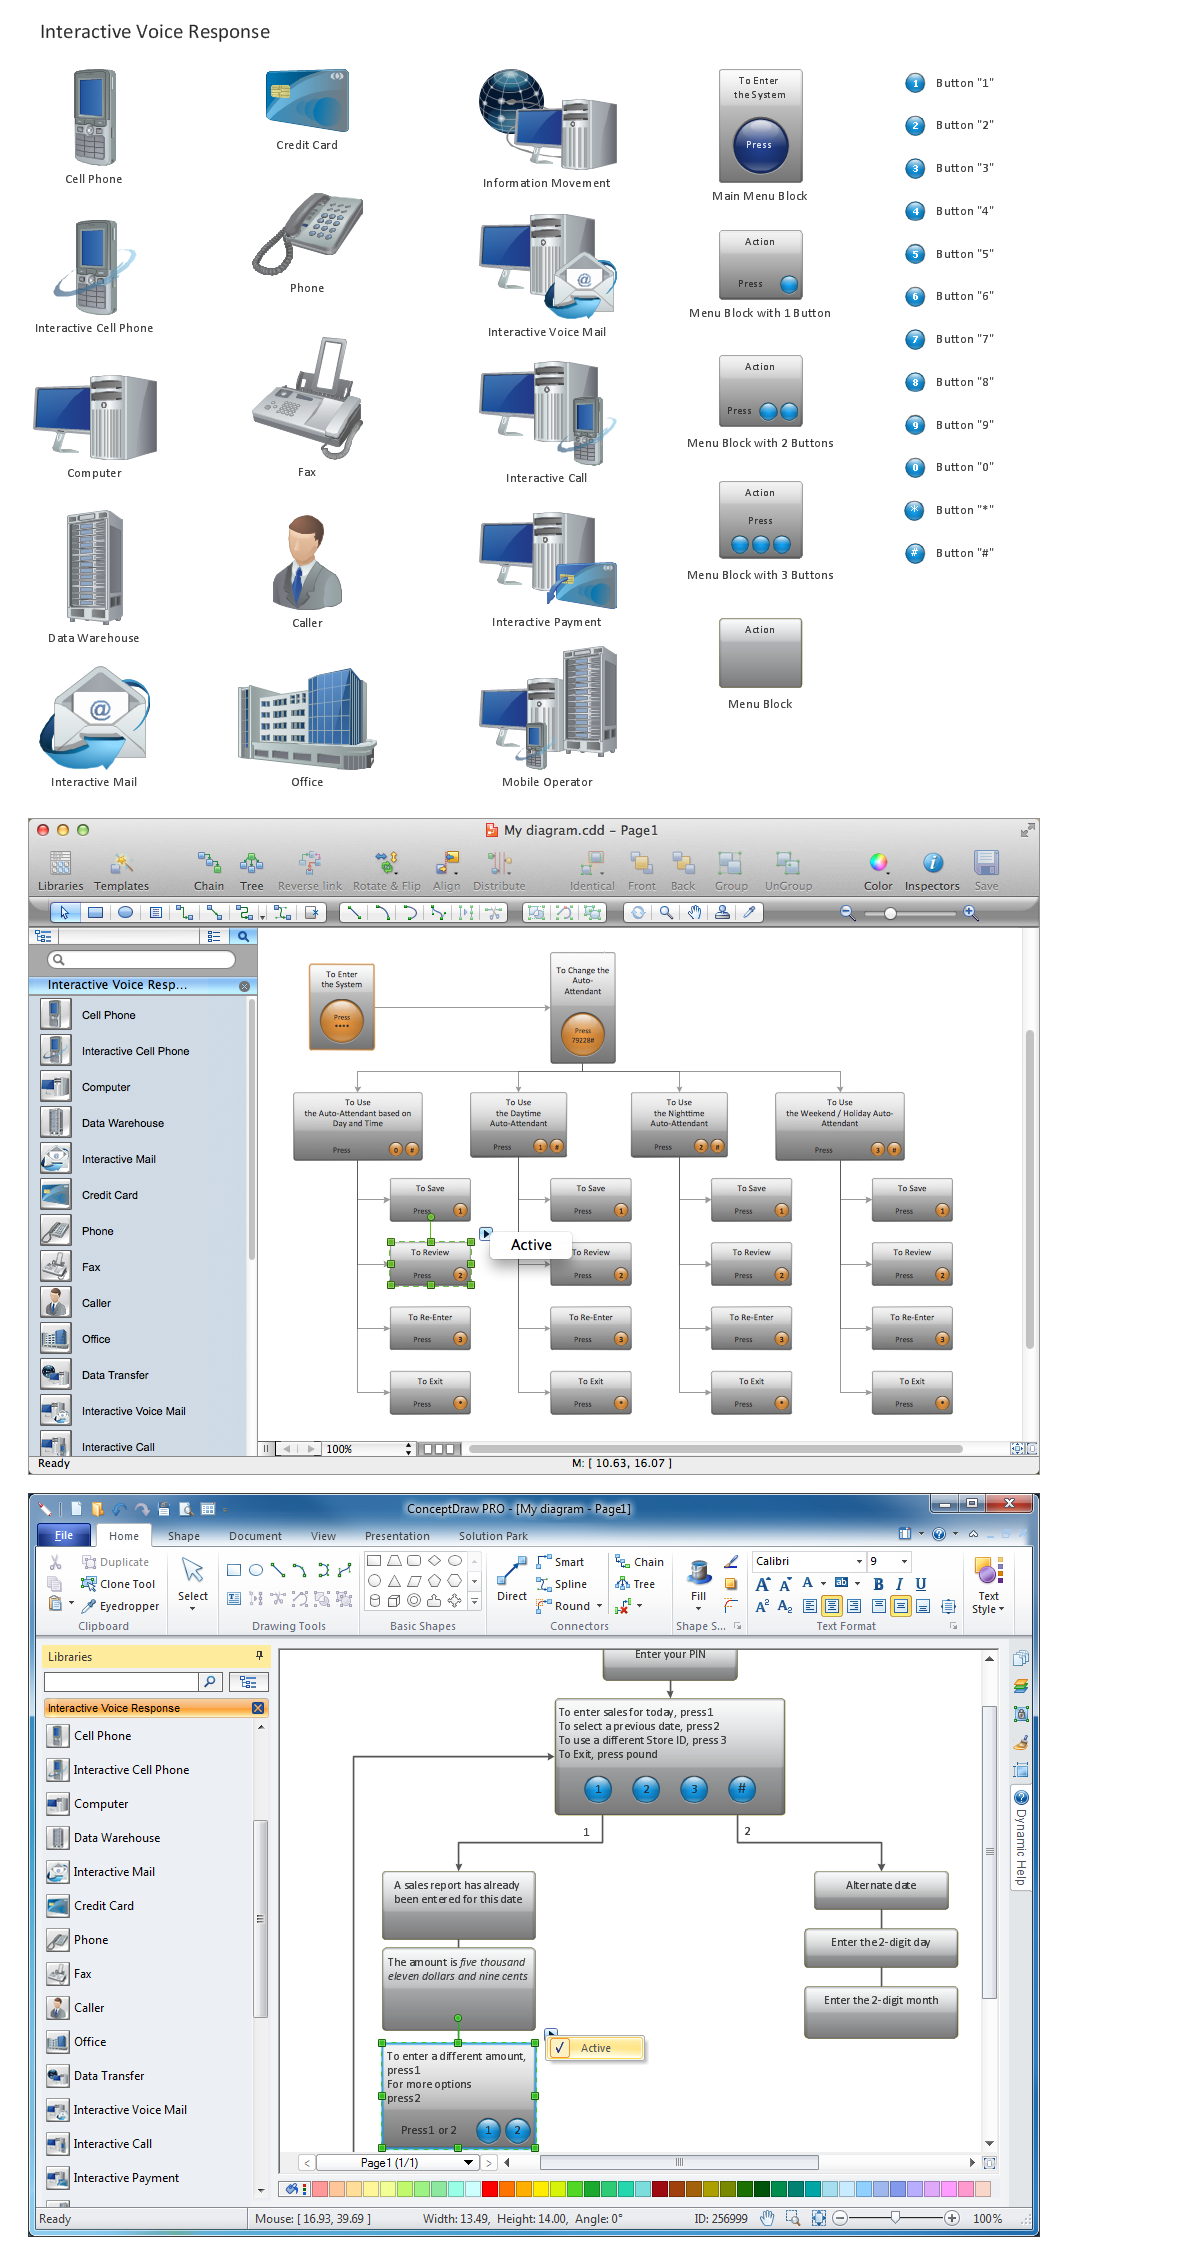 Network Diagramming Software for Design  <br>IVR Network Diagrams *